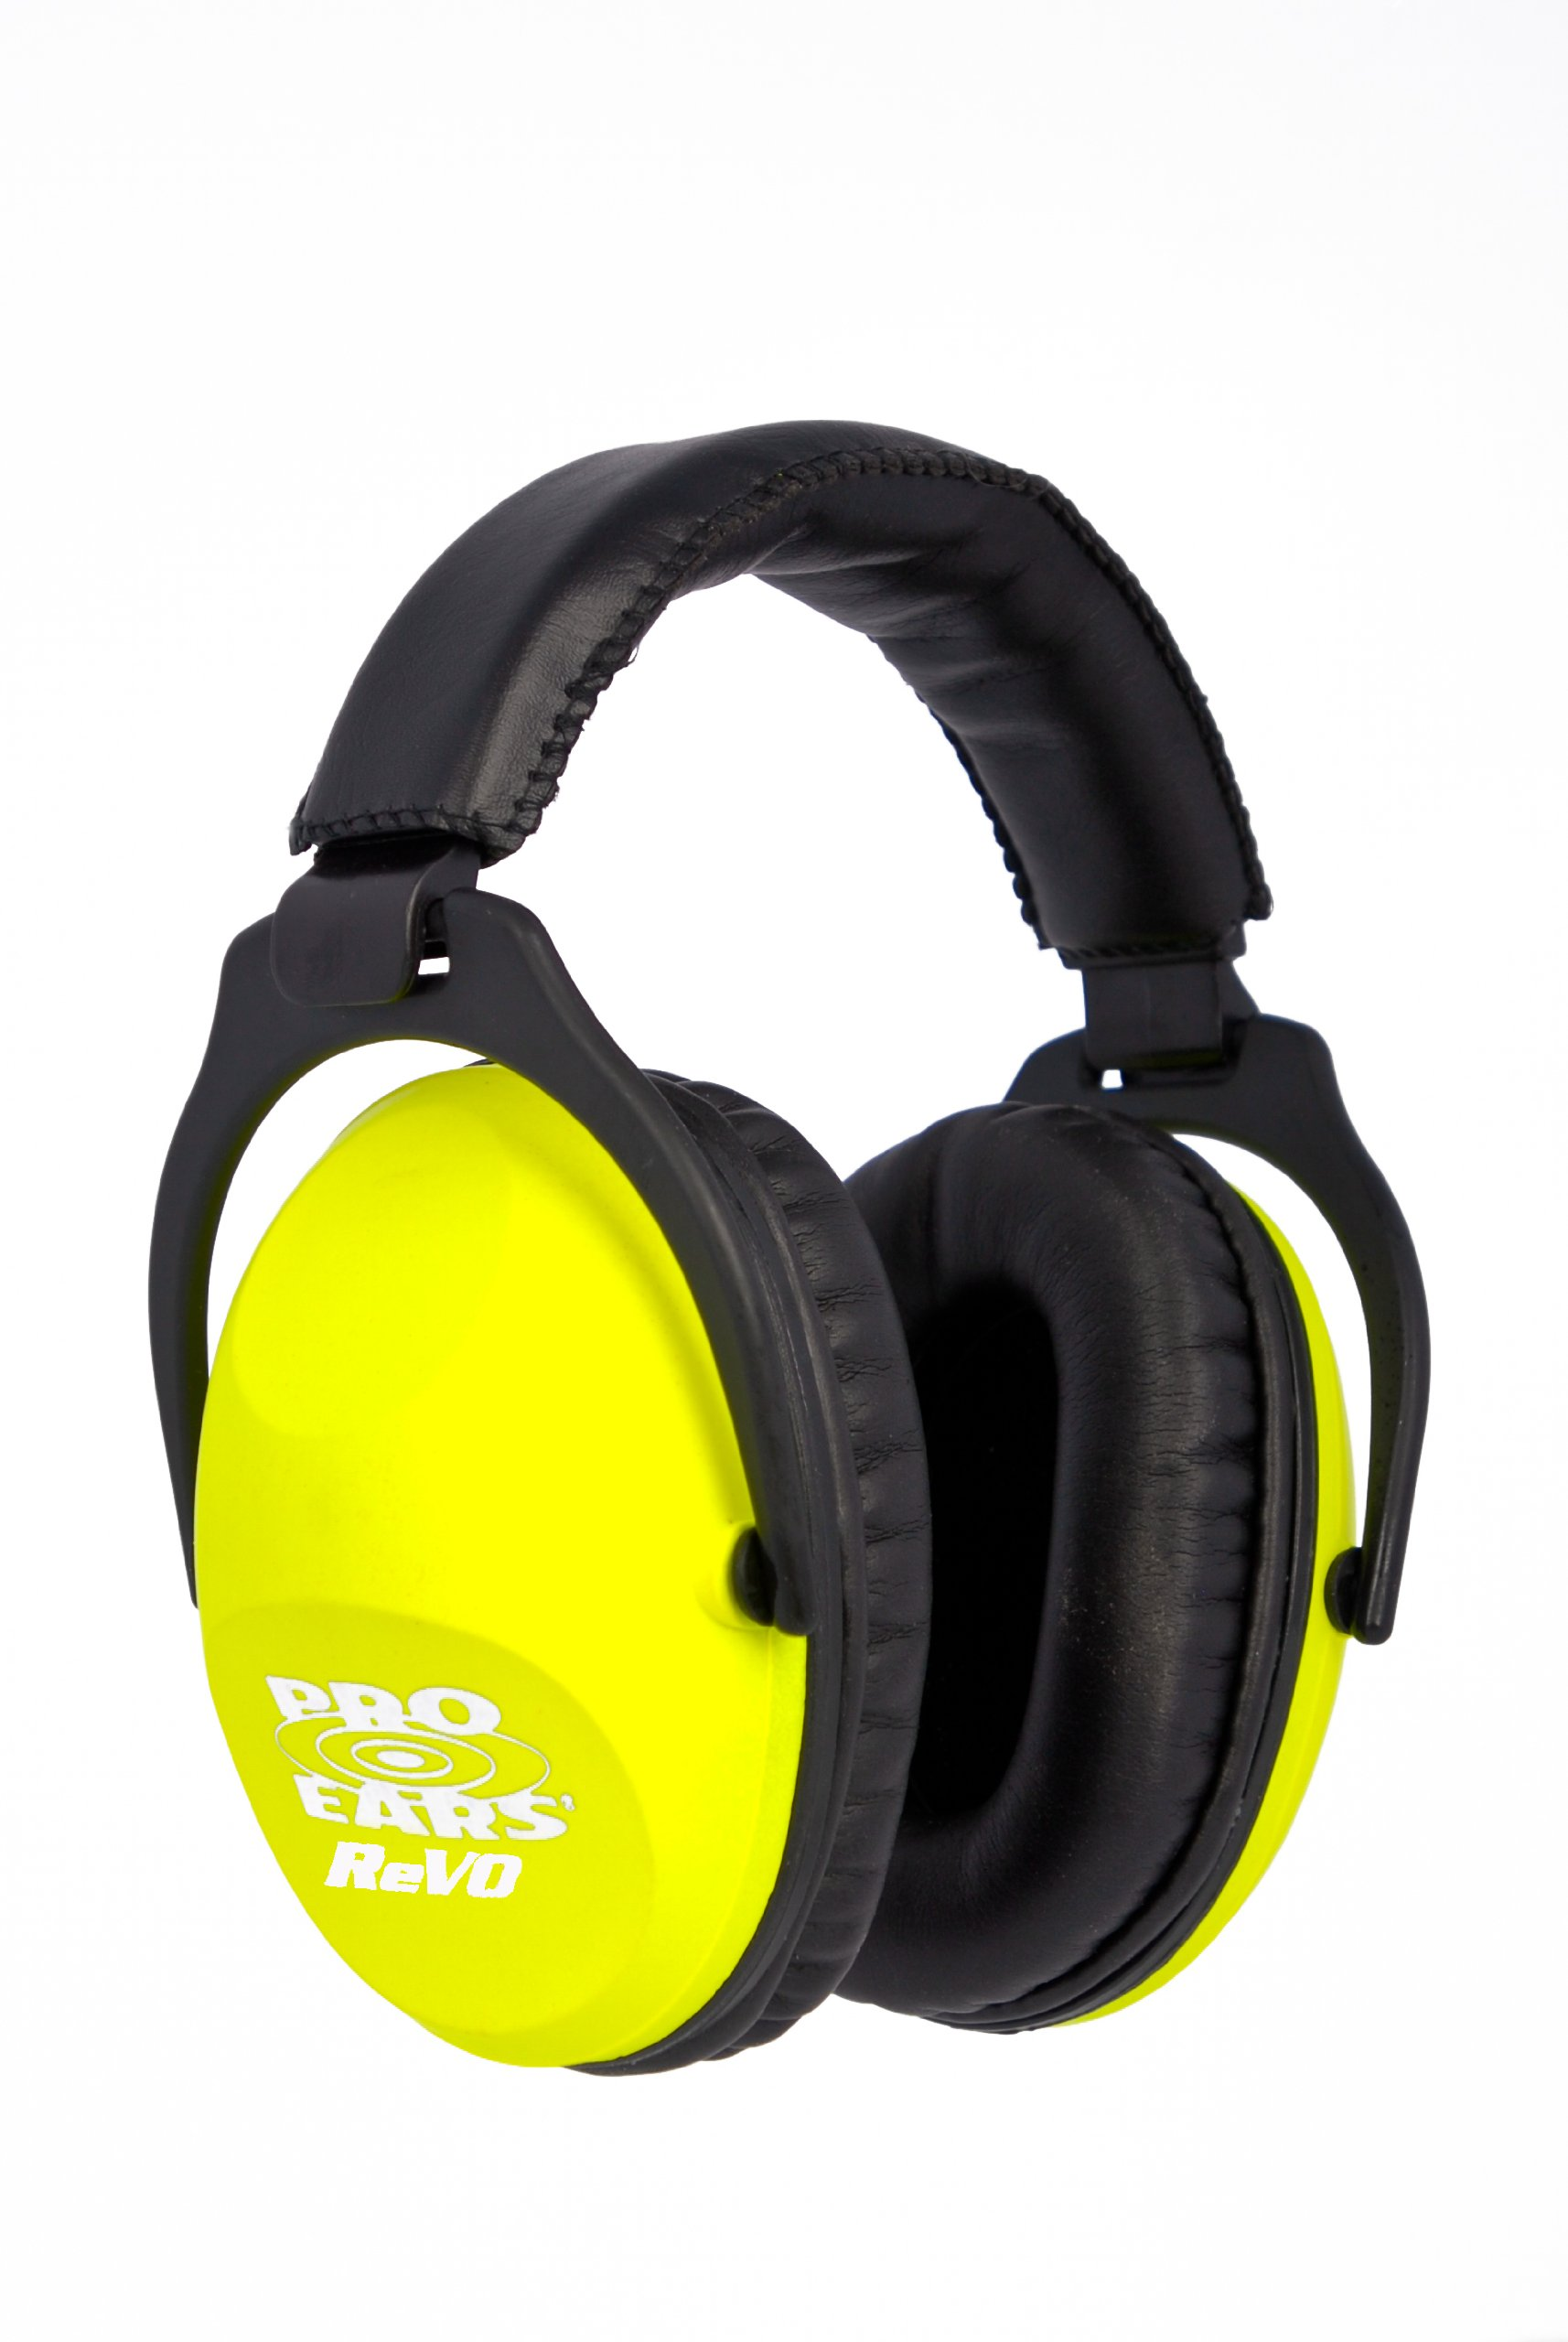 Pro Ears - ReVO - Hearing Protection - NRR 25 - Youth and Women Ear Muffs - Neon Yellow by Pro Ears (Image #1)